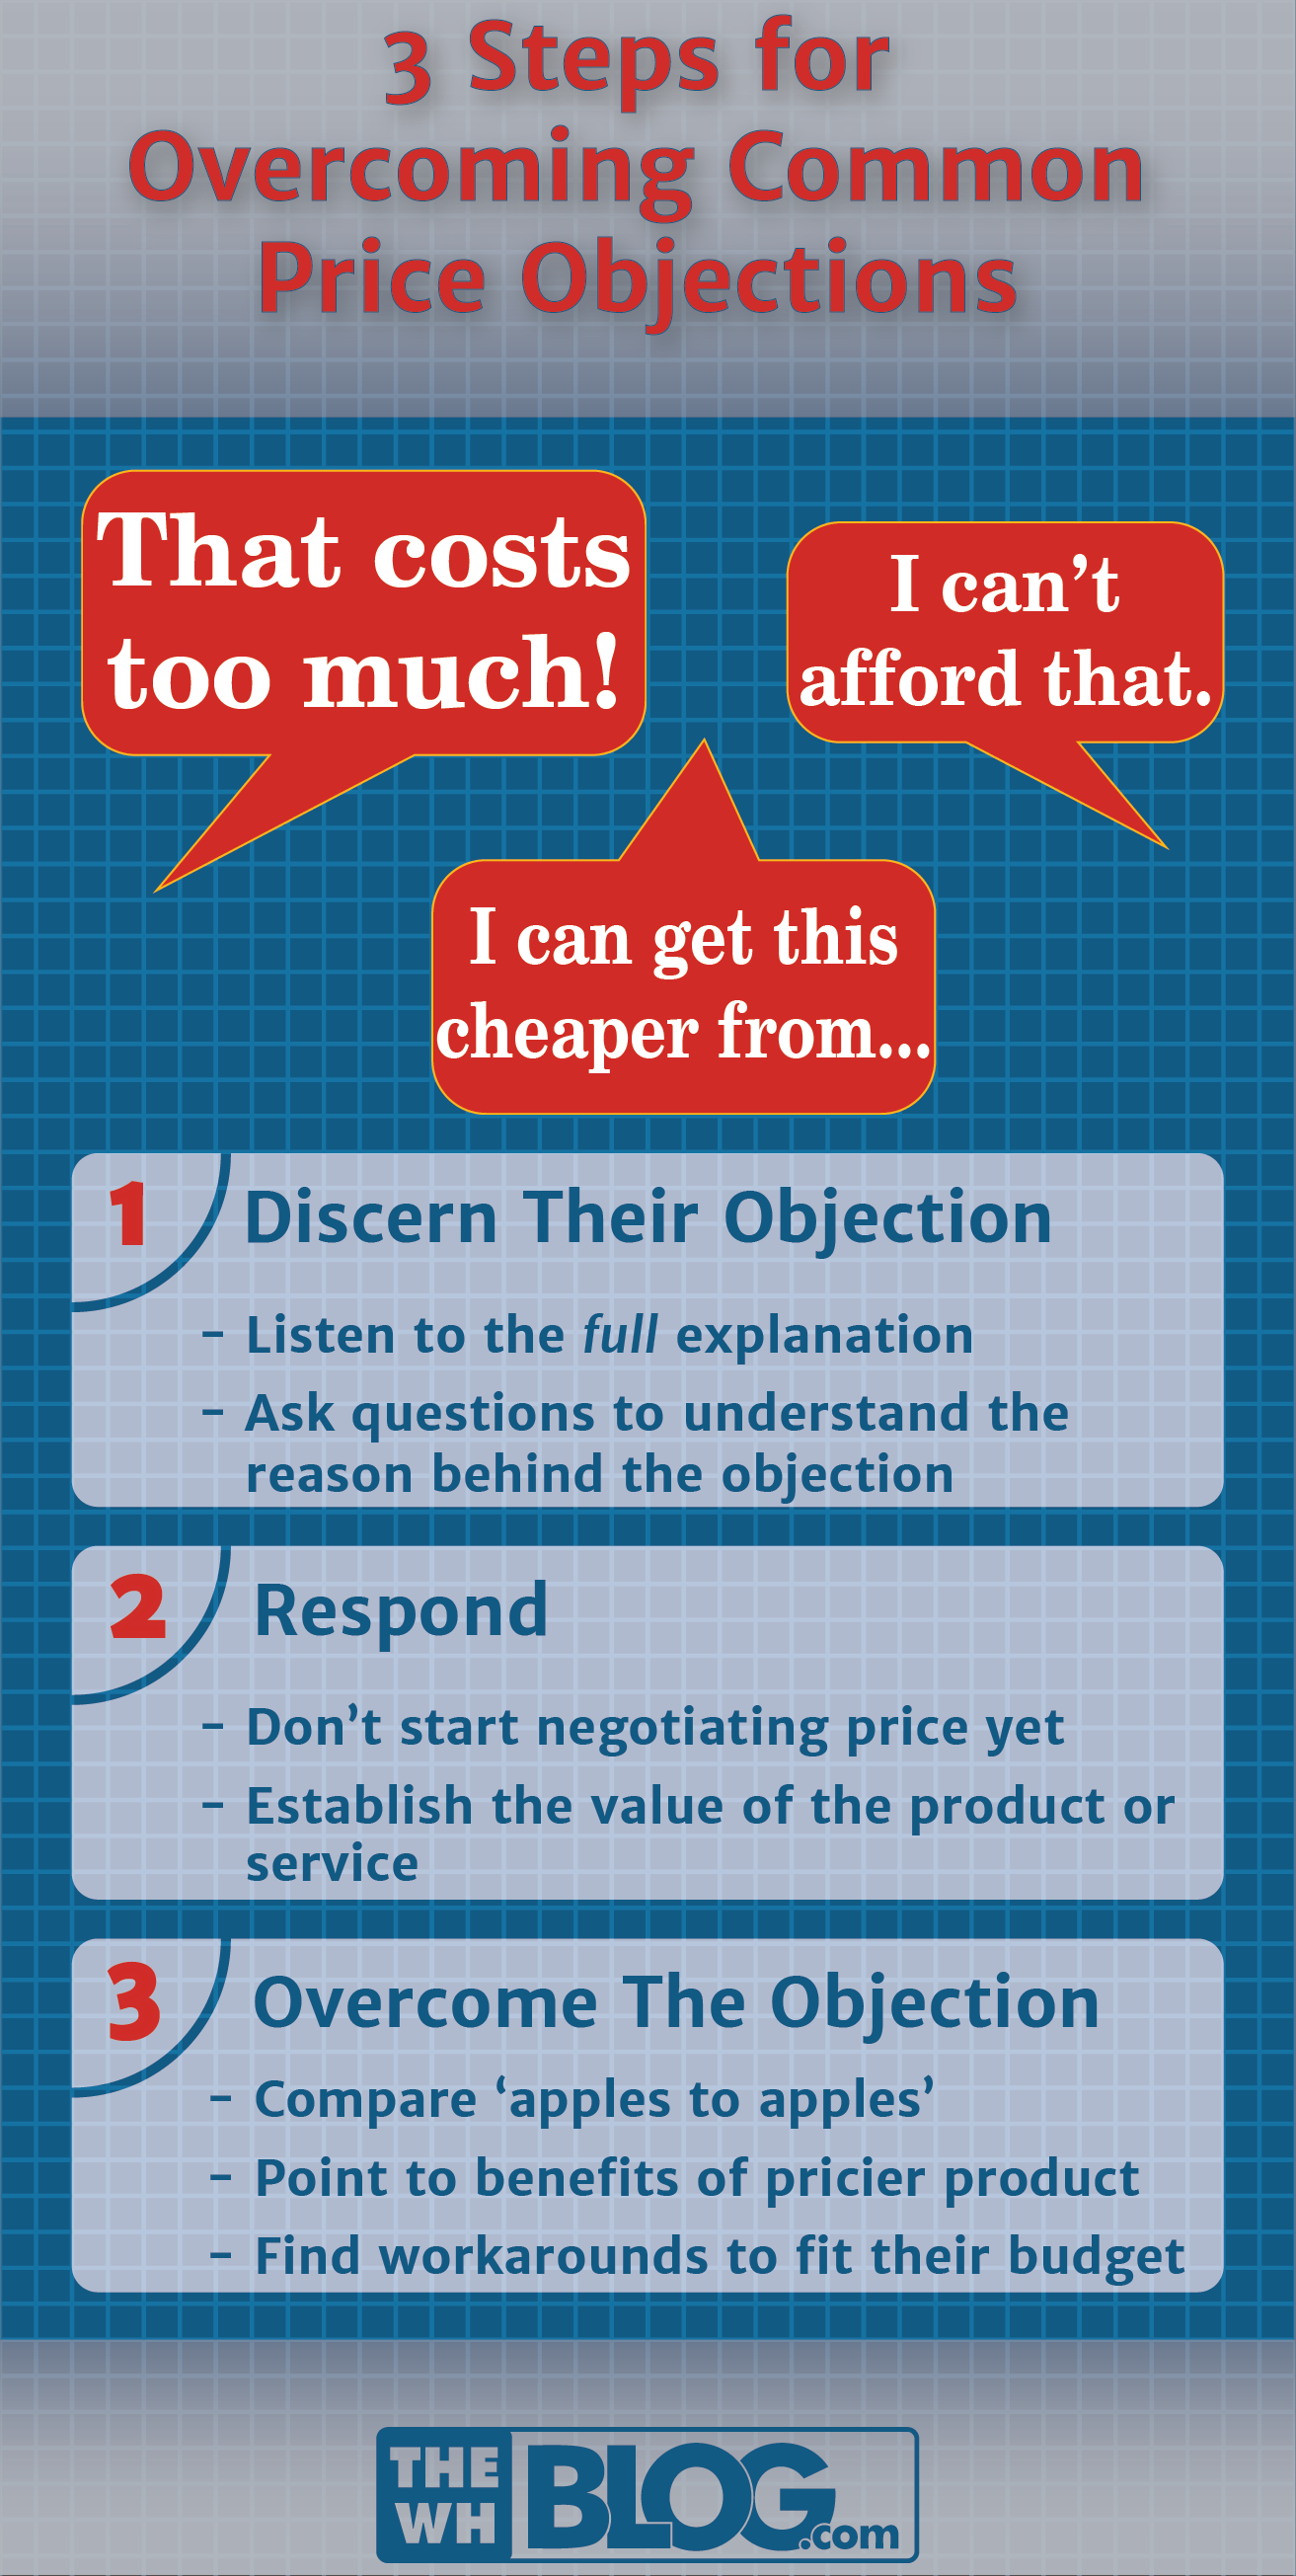 3 Steps for overcoming common price objections inforgraph